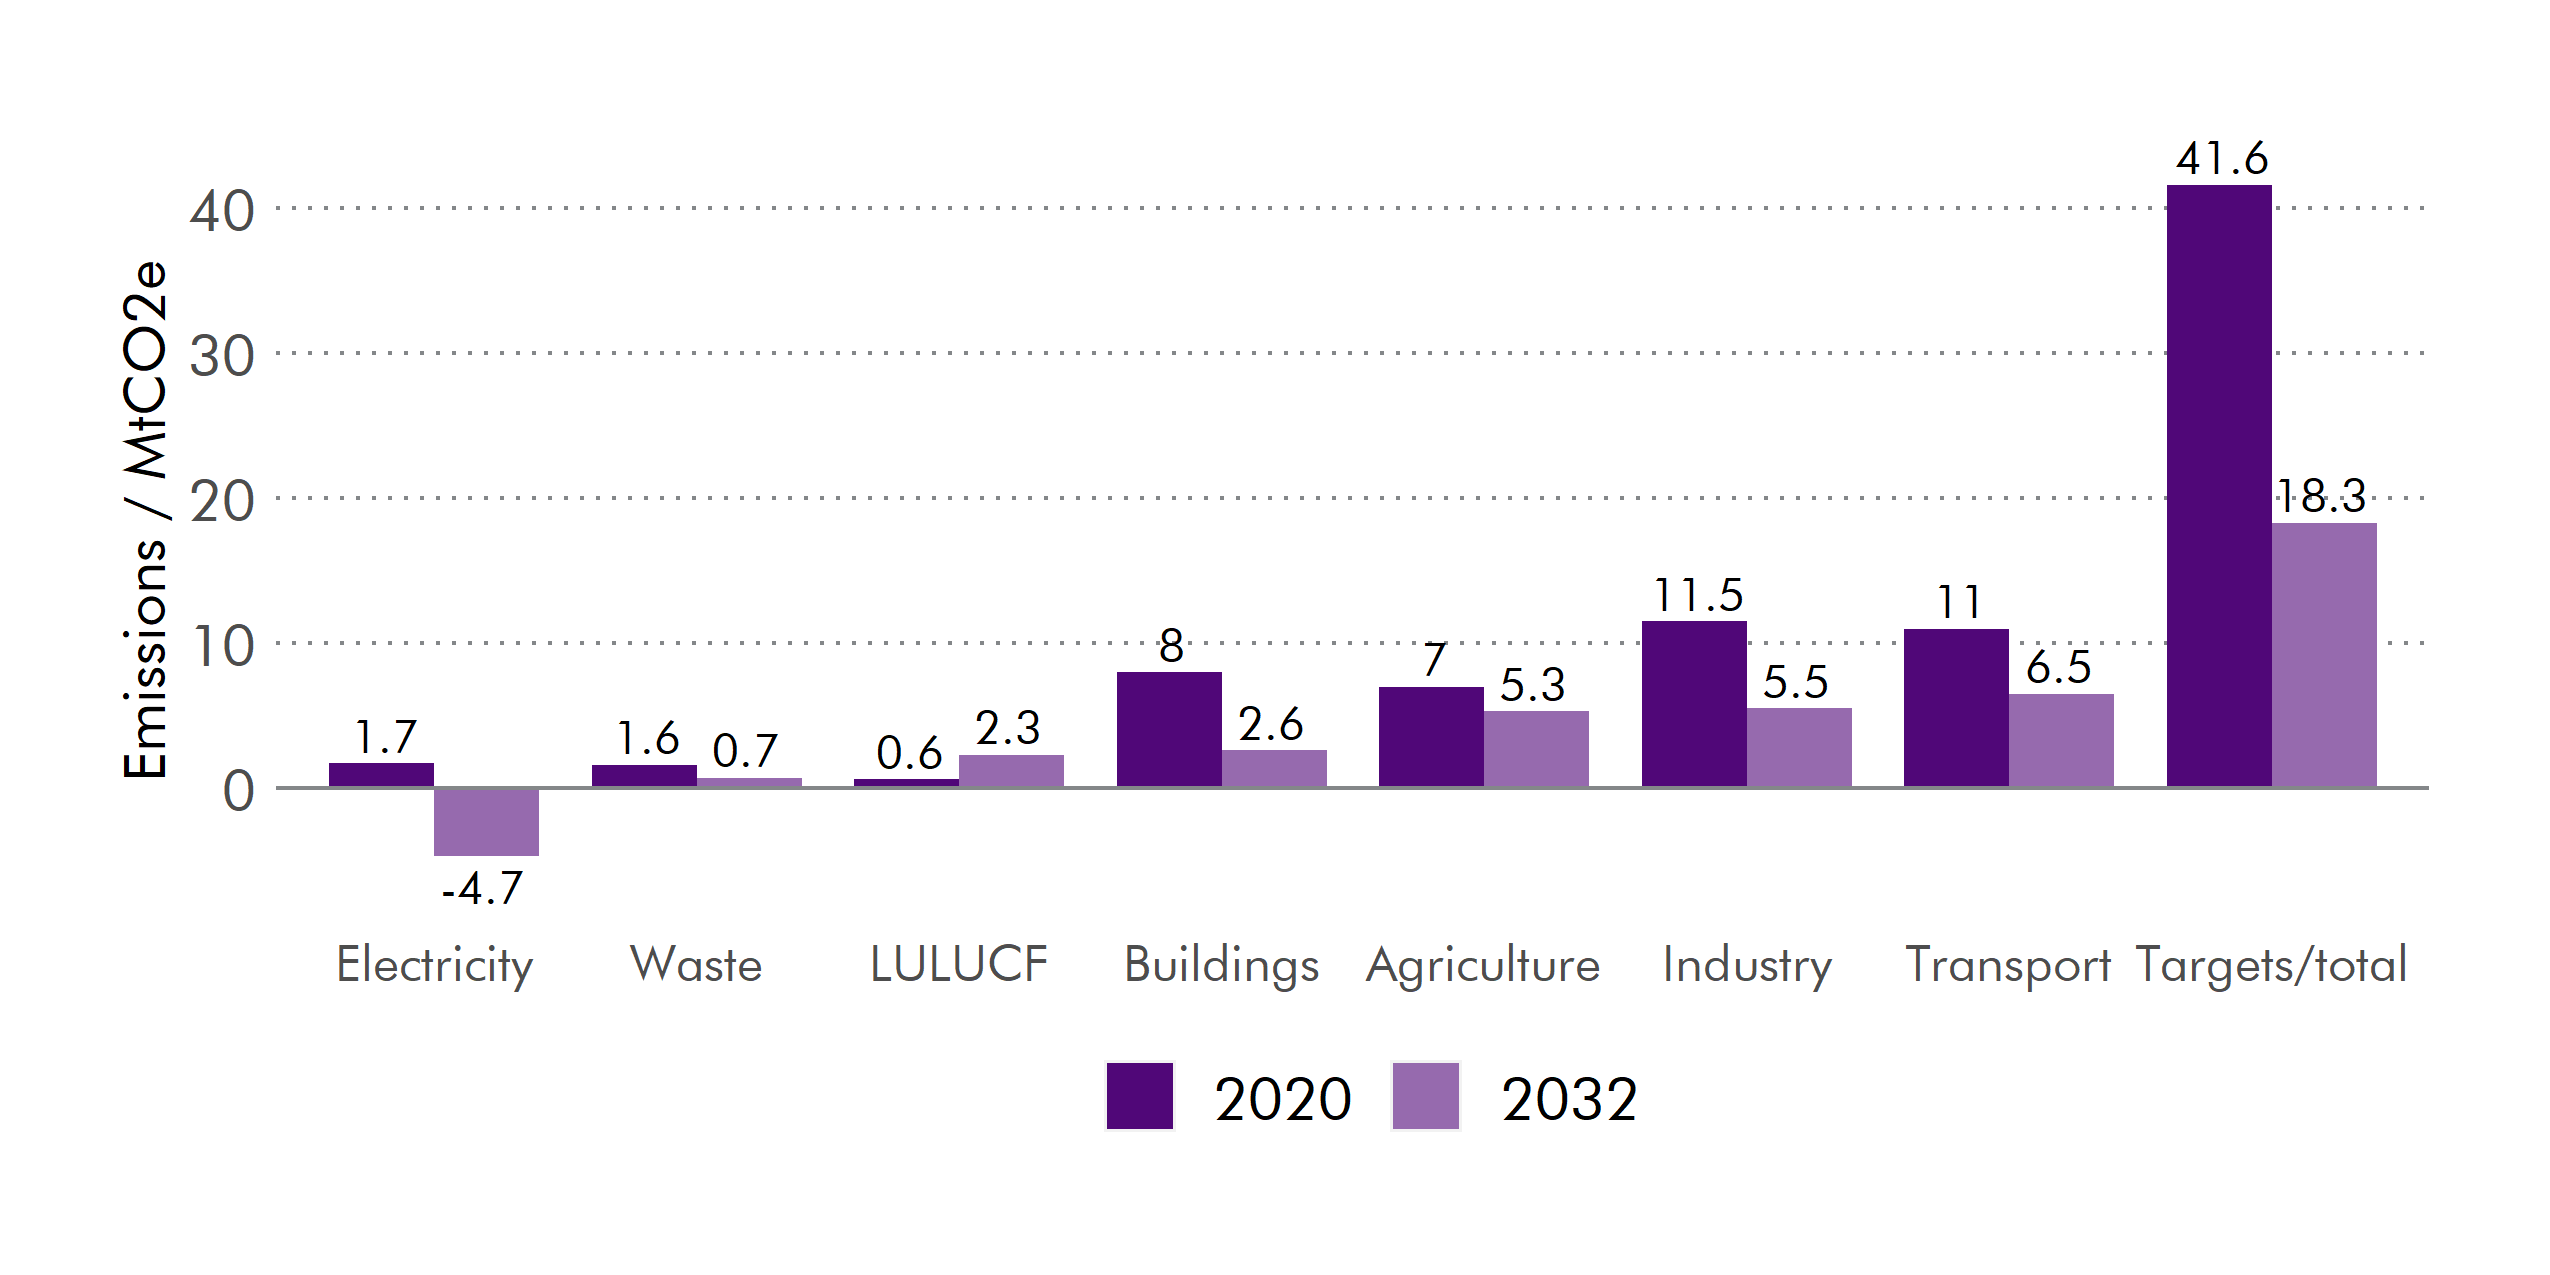 Emissions reductions are expected in all sectors, apart from LULUCF.